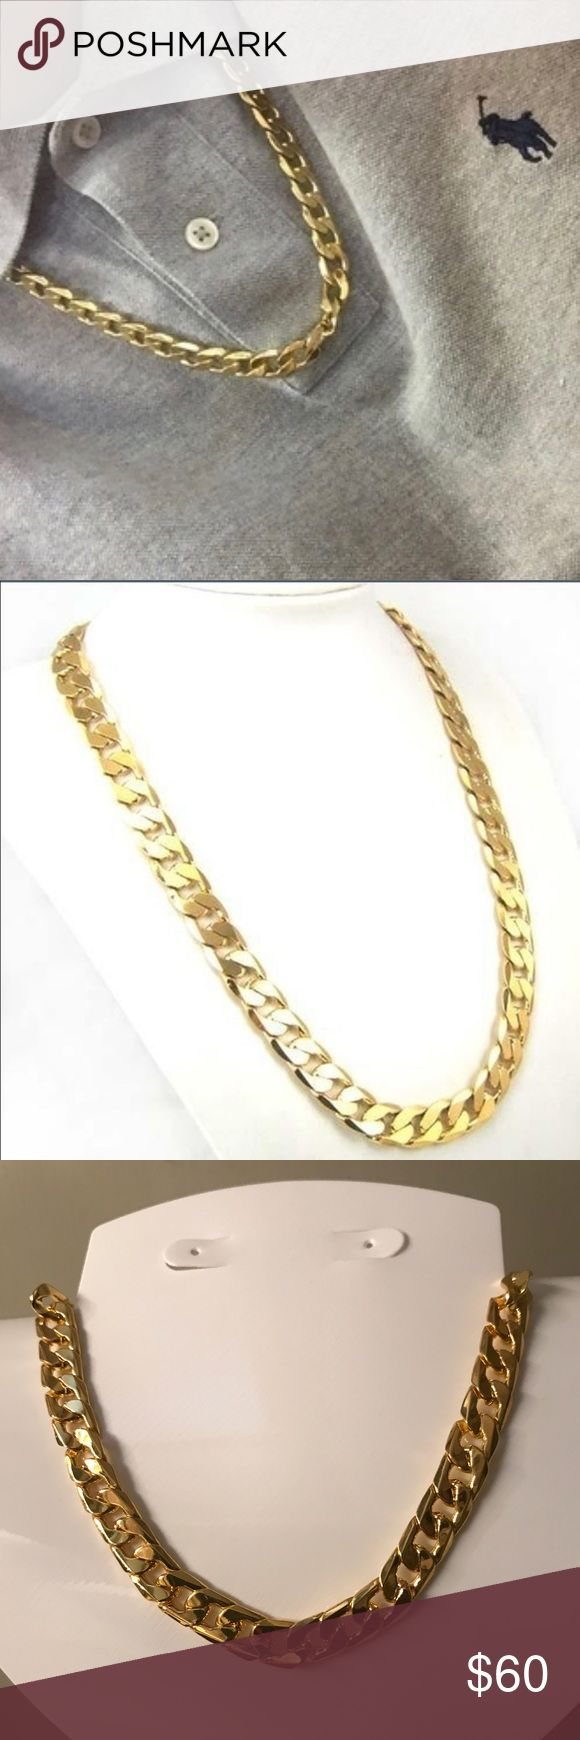 24k Gold Curb Link Chain 24k Gold Plated Curb Link Chain Accessories Jewelry